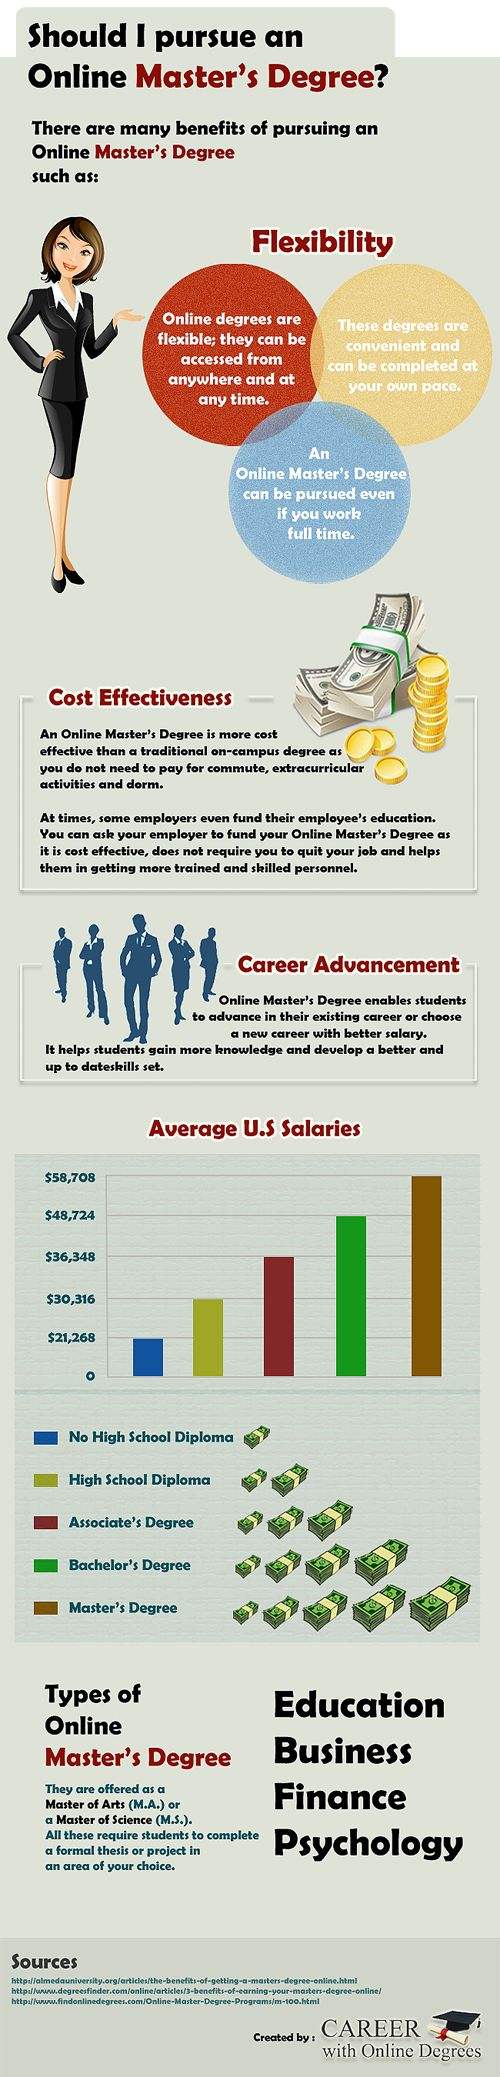 Should I Pursue an Online Master's Degree? Infographic